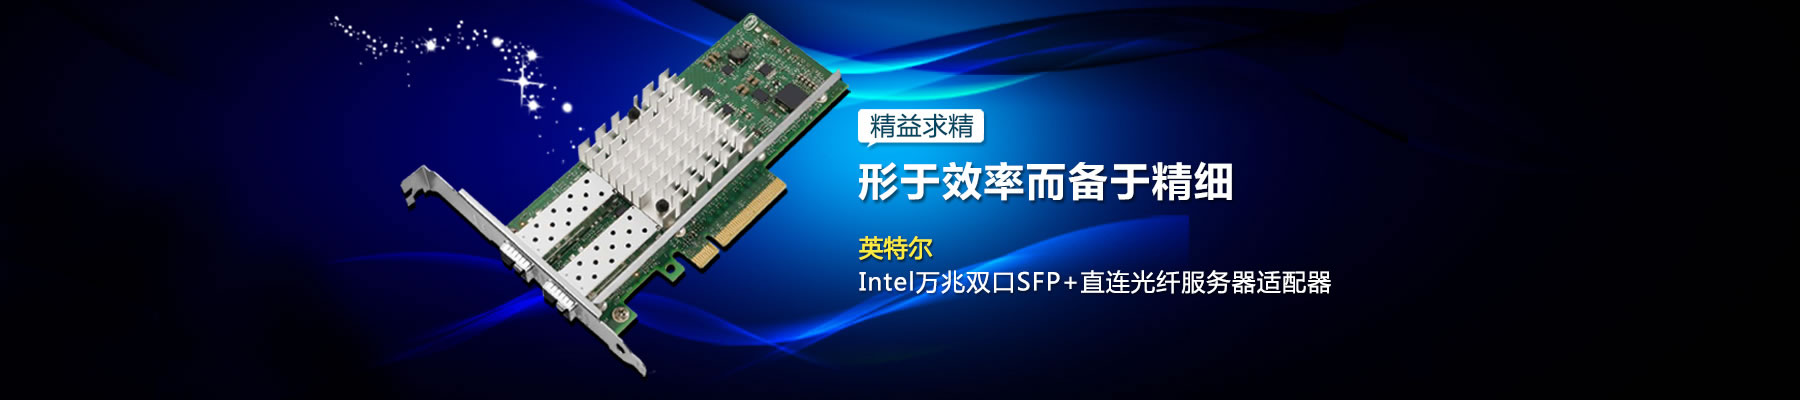 Gigabit Fiber Network Card